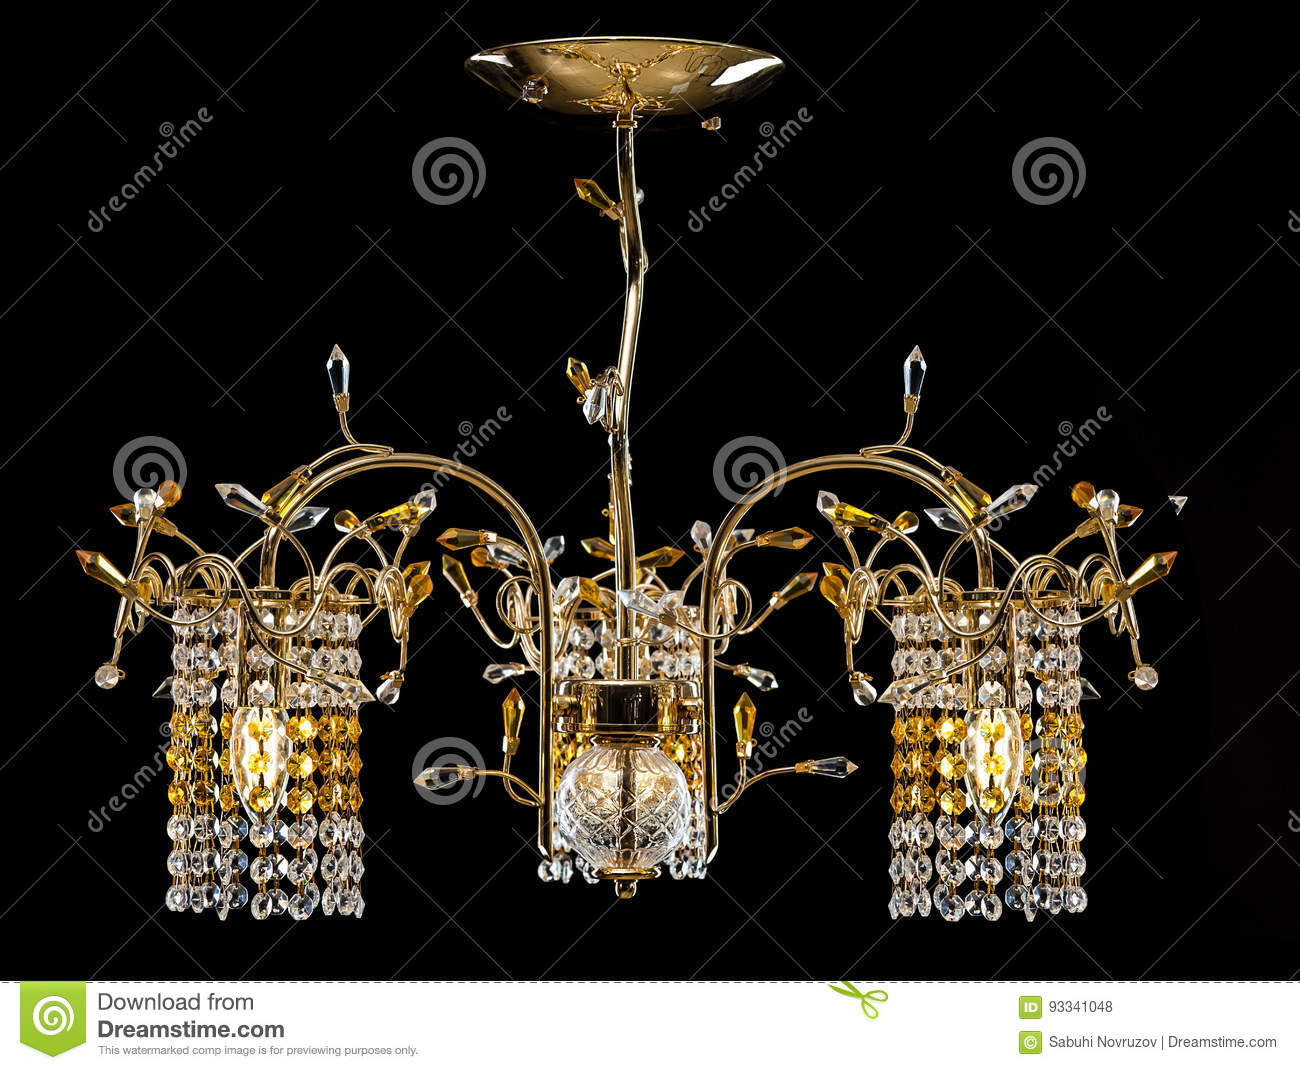 Chandelier For A Modern Interior Crystal Hallway Living Room Or Bedroom